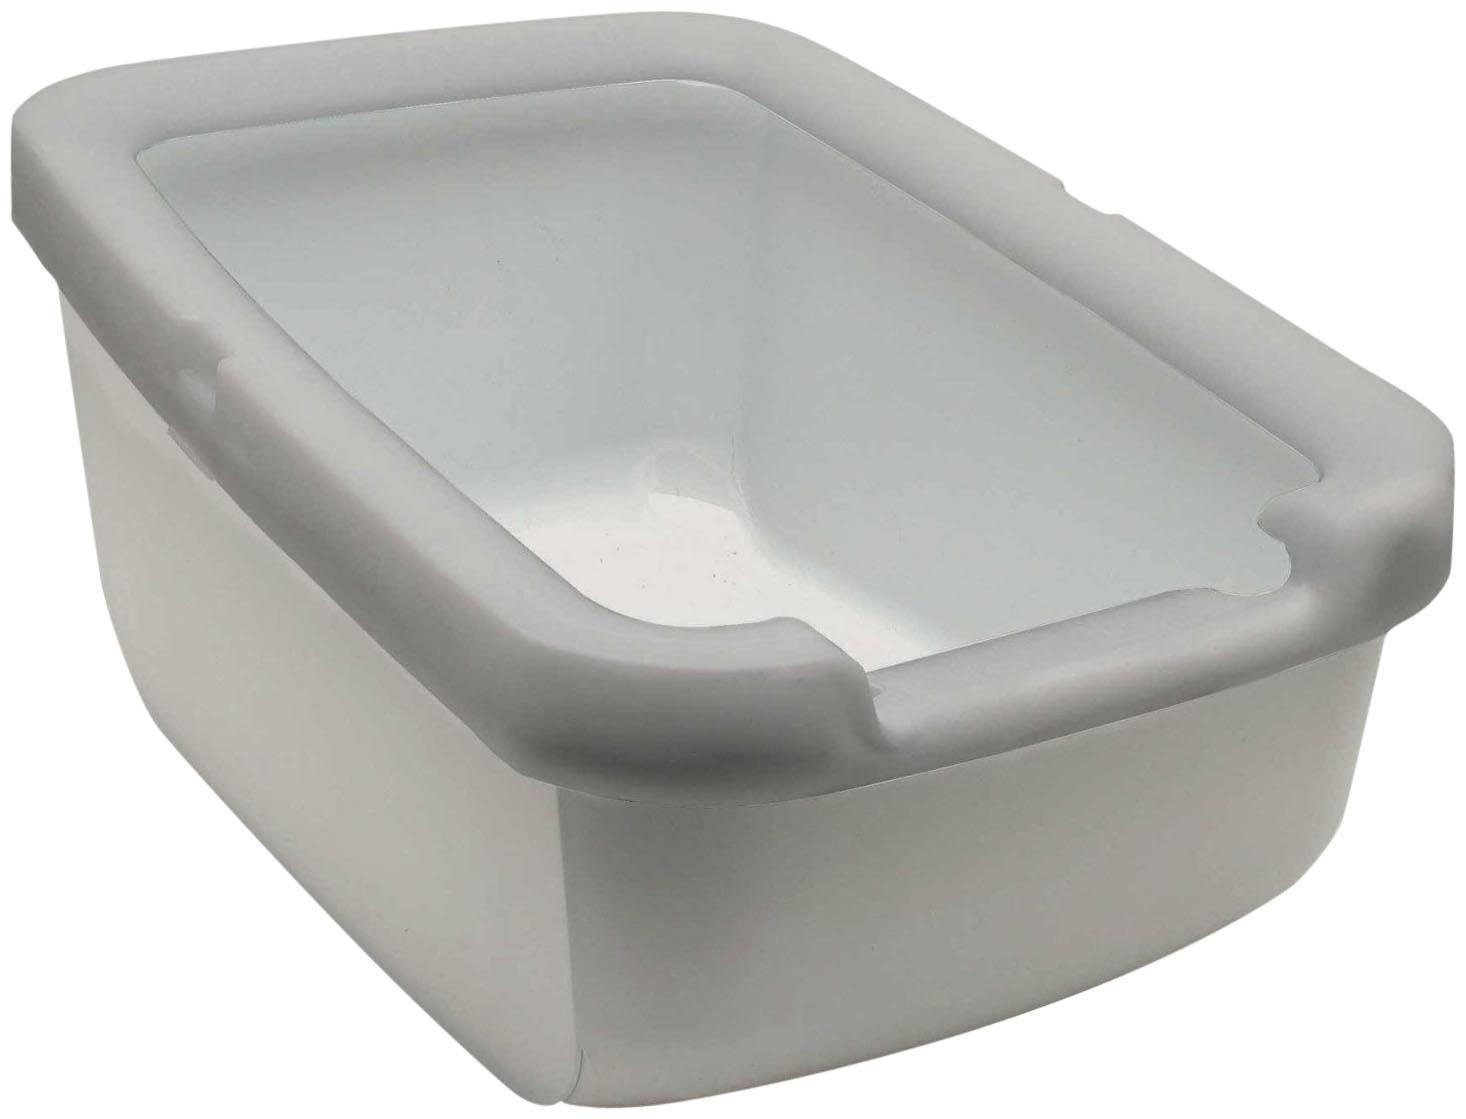 Catit Cat Litter Pan with Rim, Taupe by Catit (Image #1)